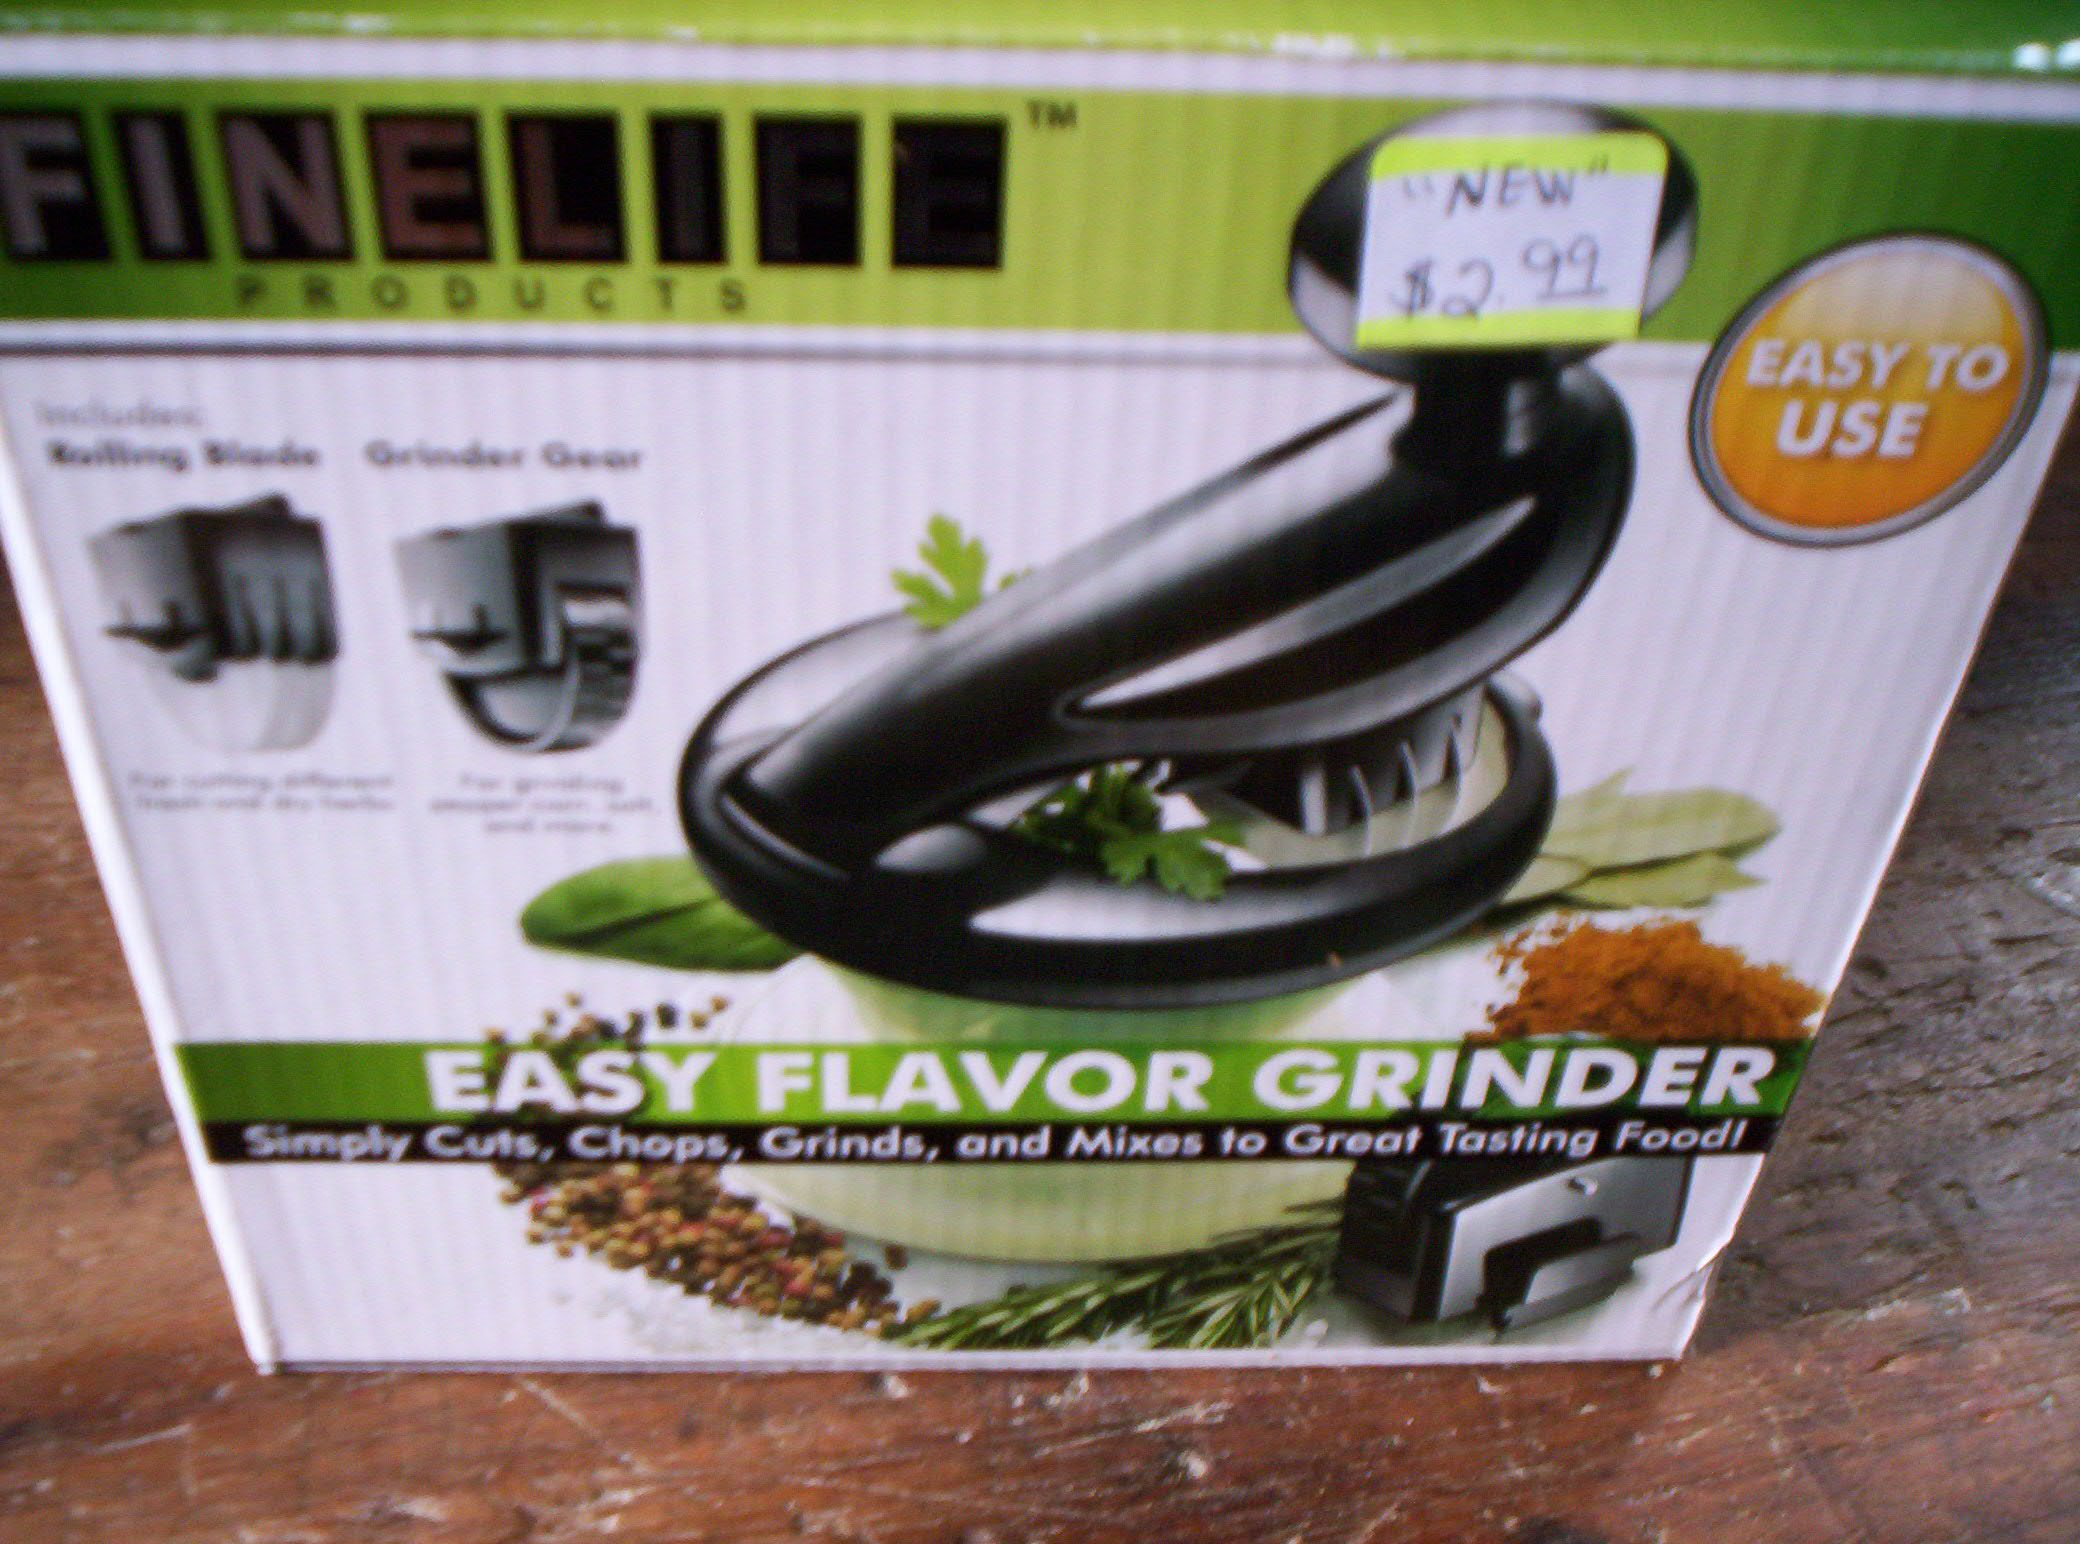 Herb and Spice Grinder